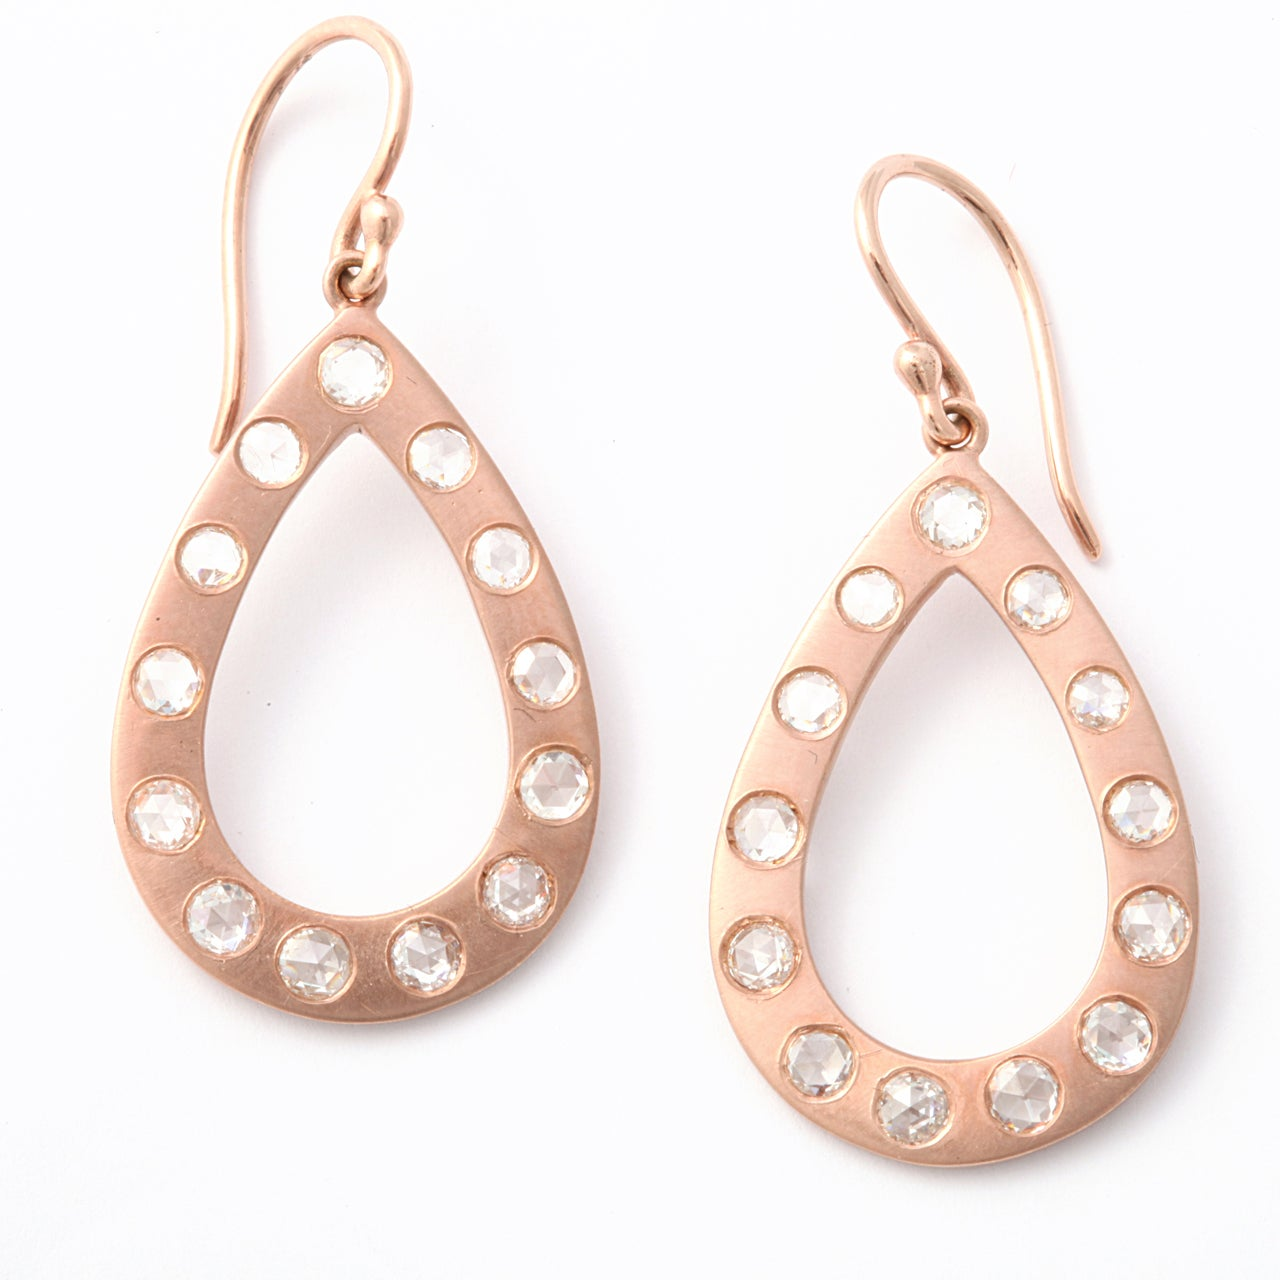 open rose gold pear shape applied with 26 rose cut diamonds approximate weight 2.80 carats